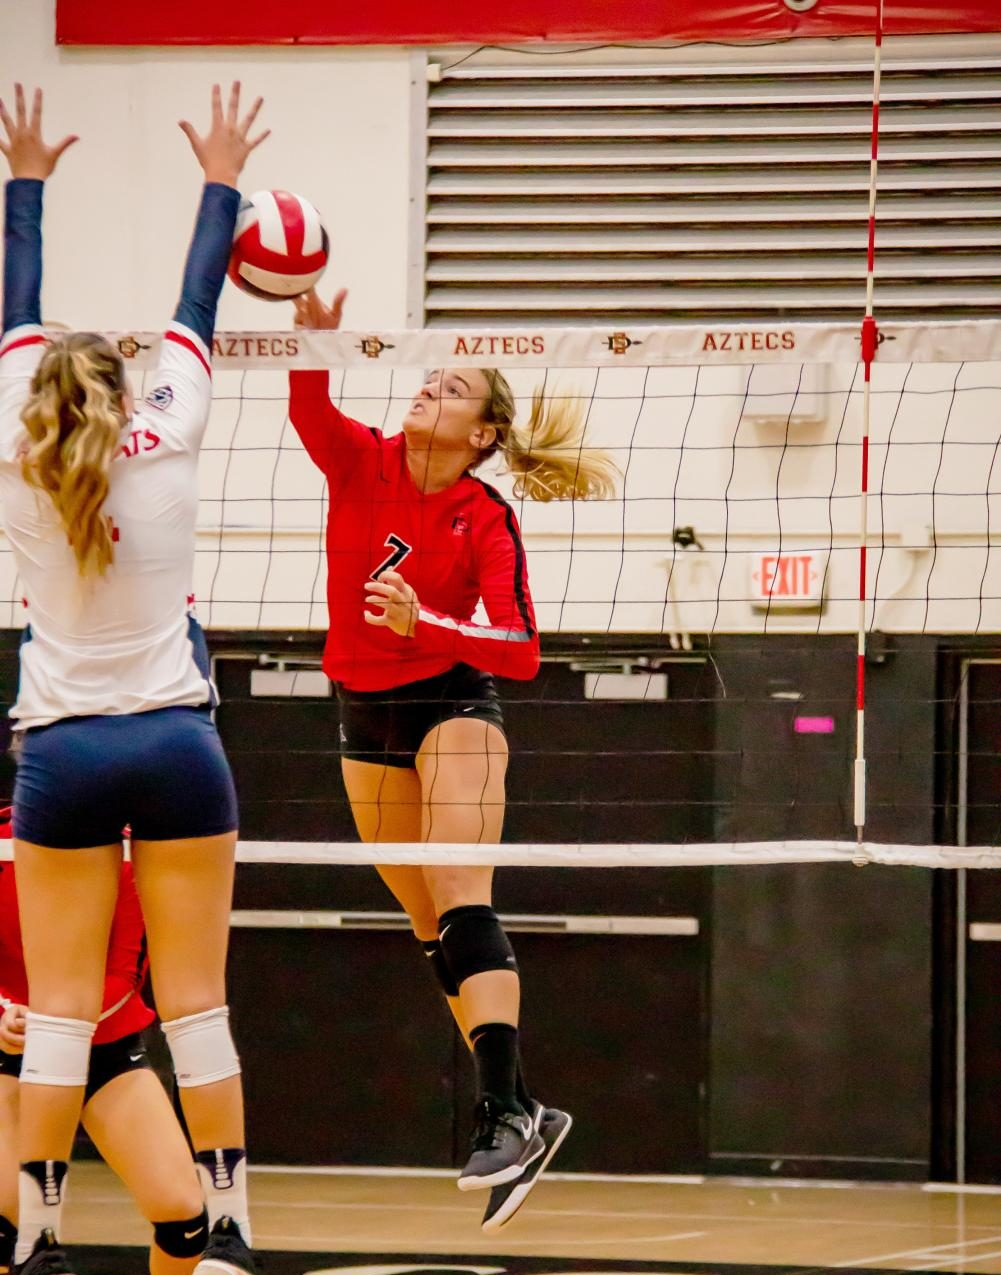 Senior outside hitter Hannah Turnlund spikes the ball during the Aztecs' 3-0 loss against Arizona on Sept. 7 at Peterson Gym.